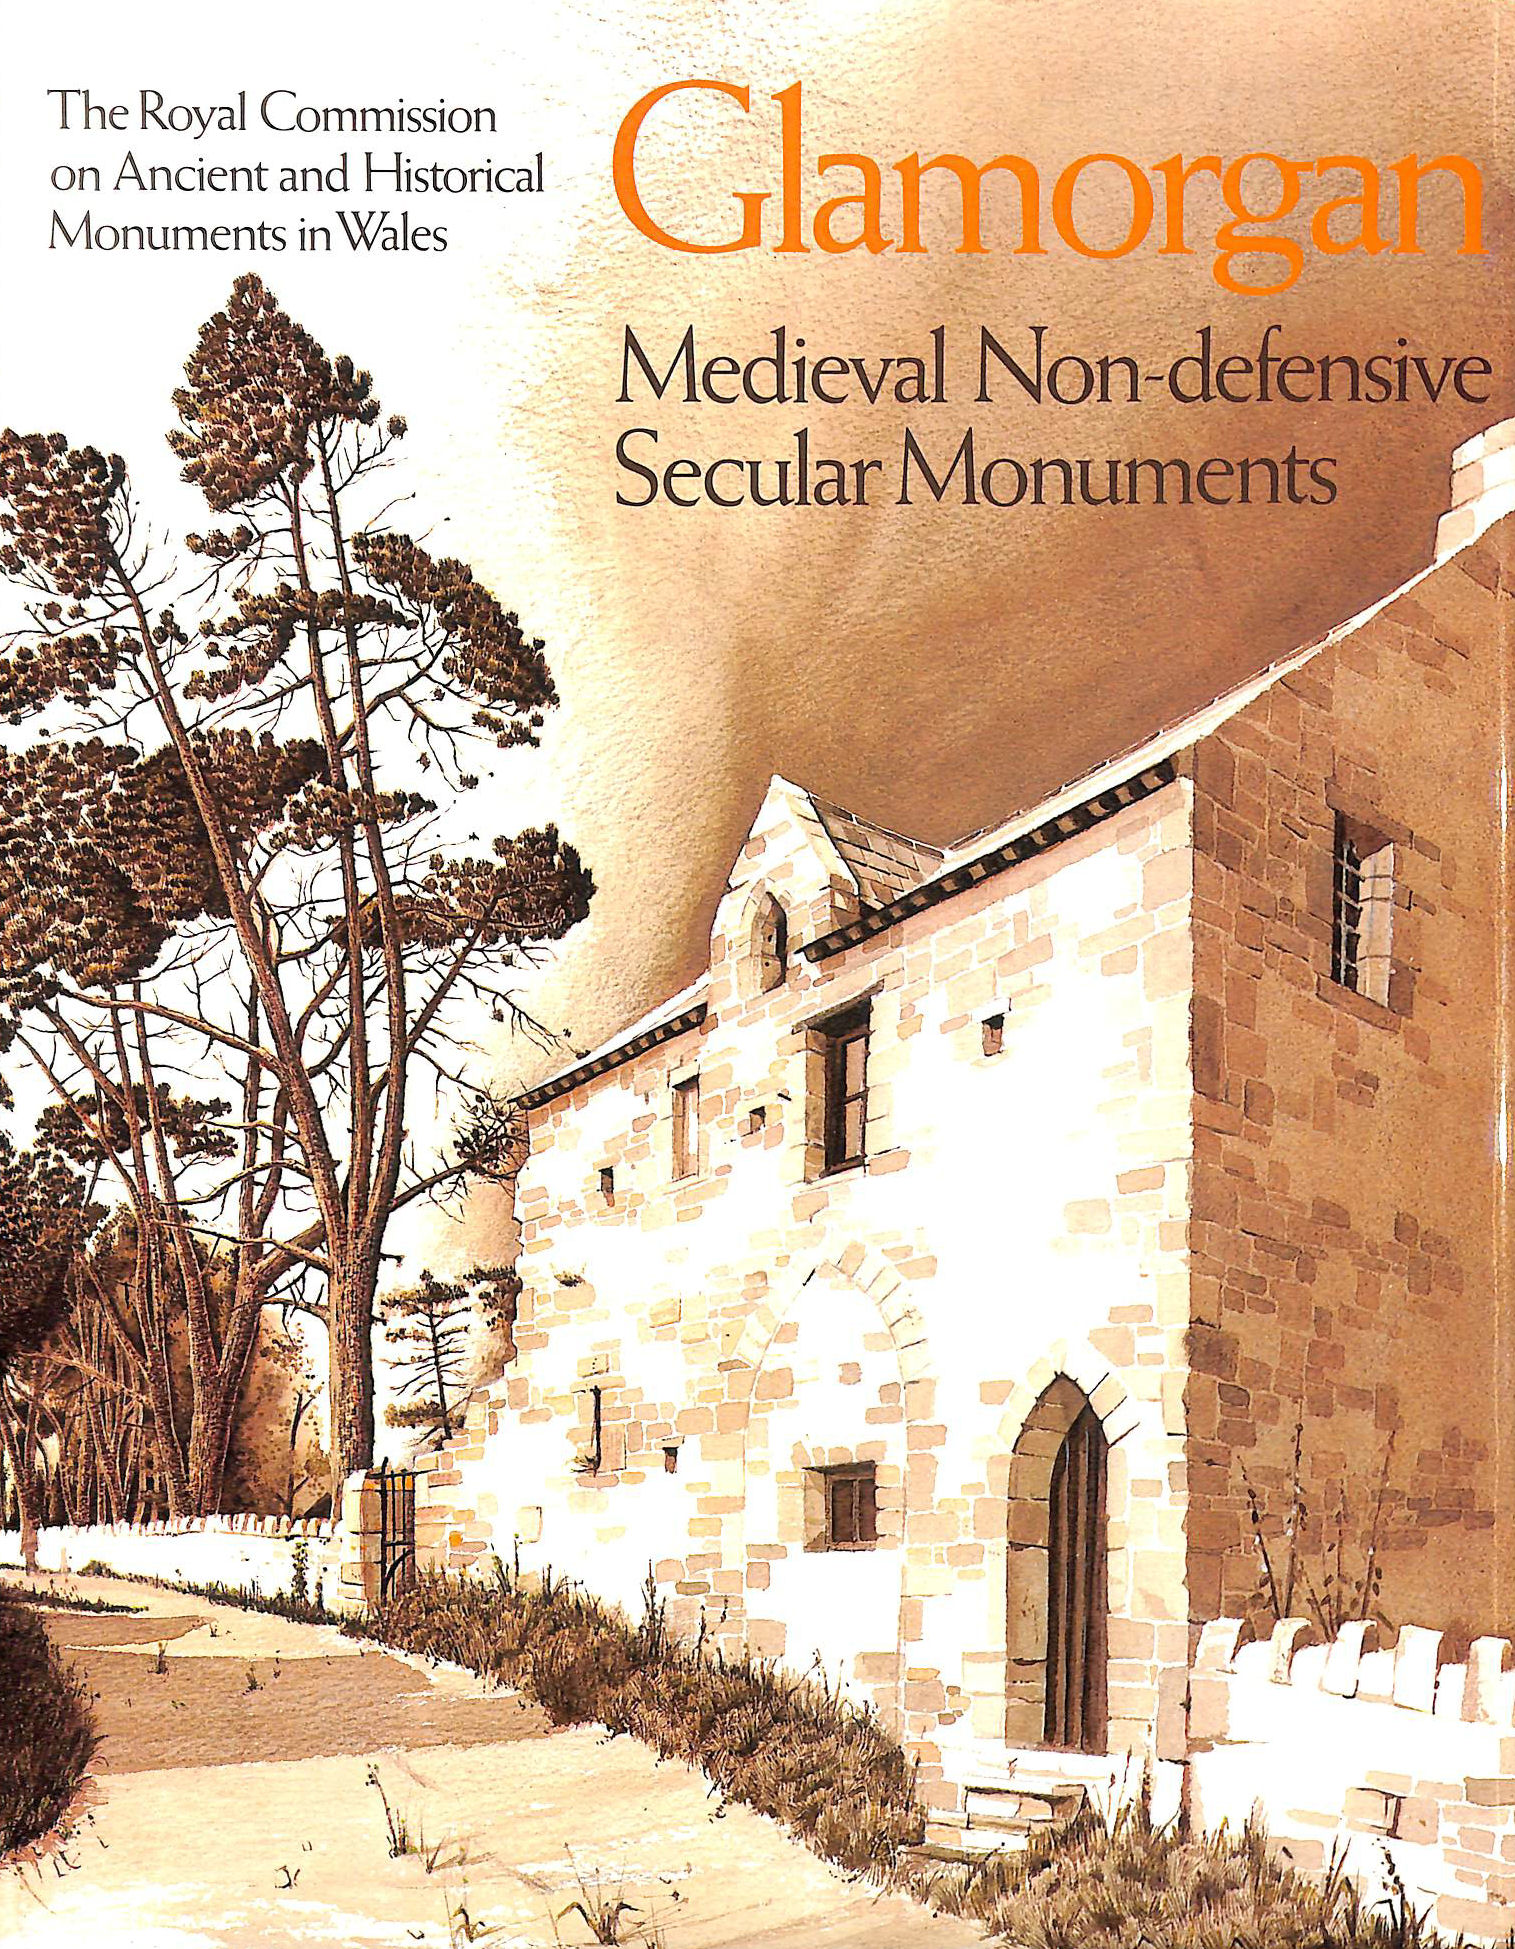 Image for An Inventory of the Ancient Monuments in Glamorgan:, vol.3 Medieval Secular Monuments, part 2: non-defensive